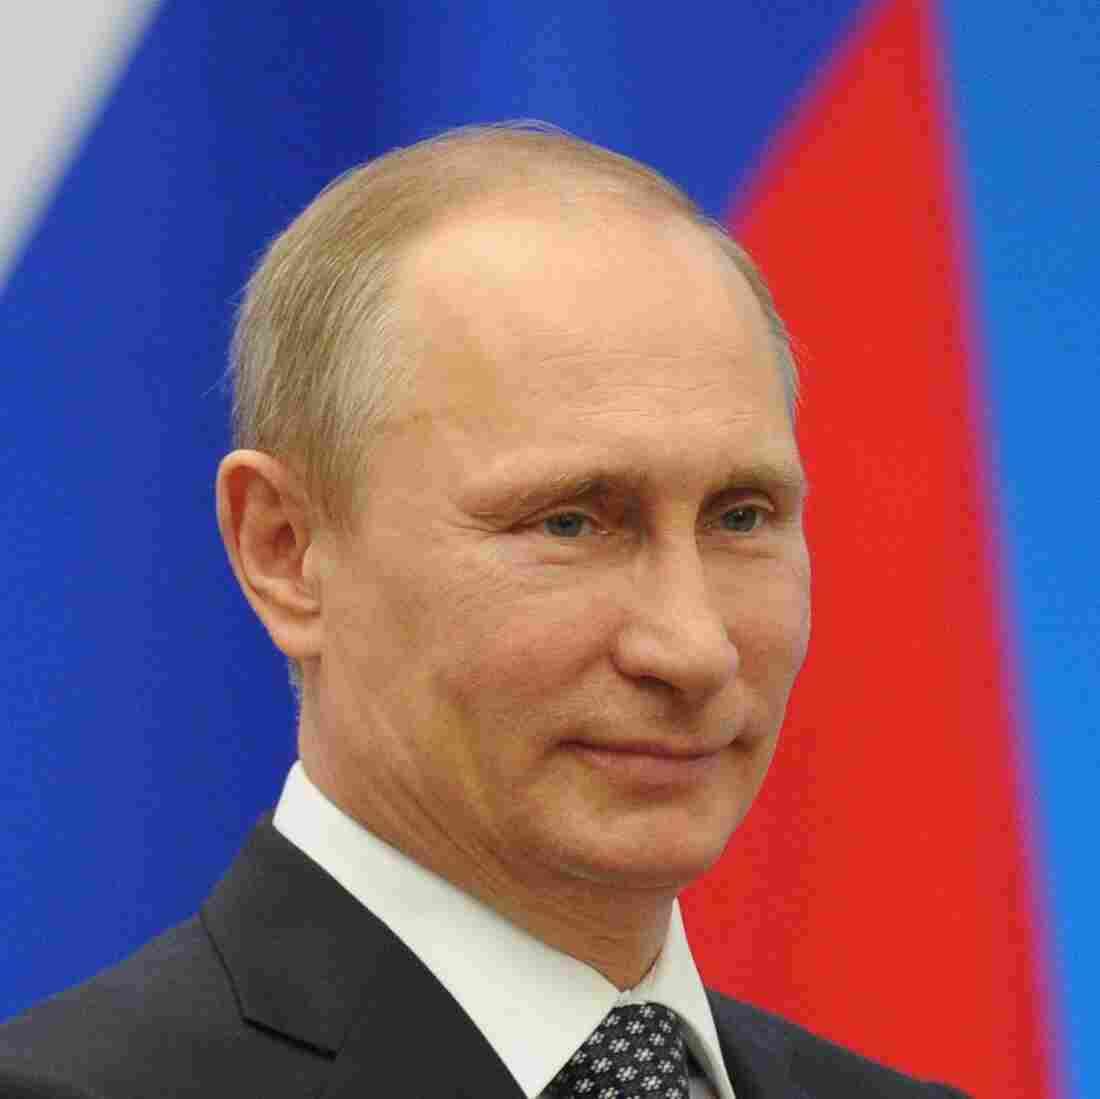 West Is Ruled 'By The Gun,' Putin Says As He Annexes Crimea